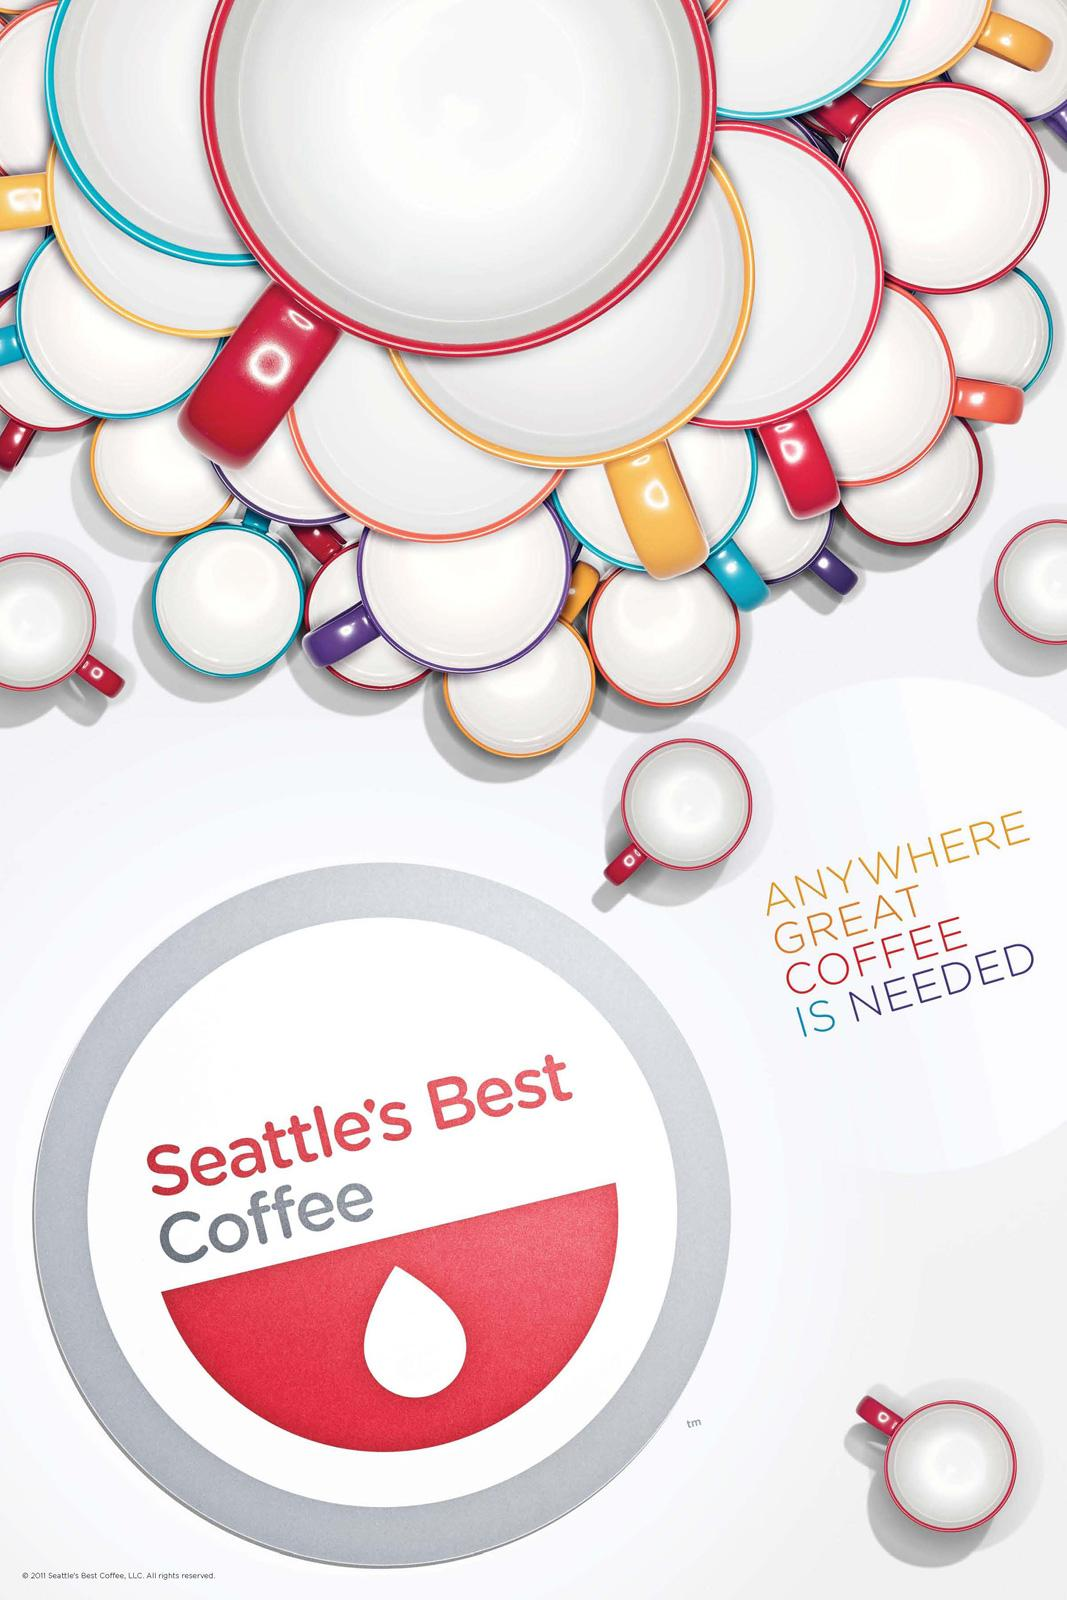 Seattle's Best Coffee Outdoor Ad -  Anywhere great coffee is needed